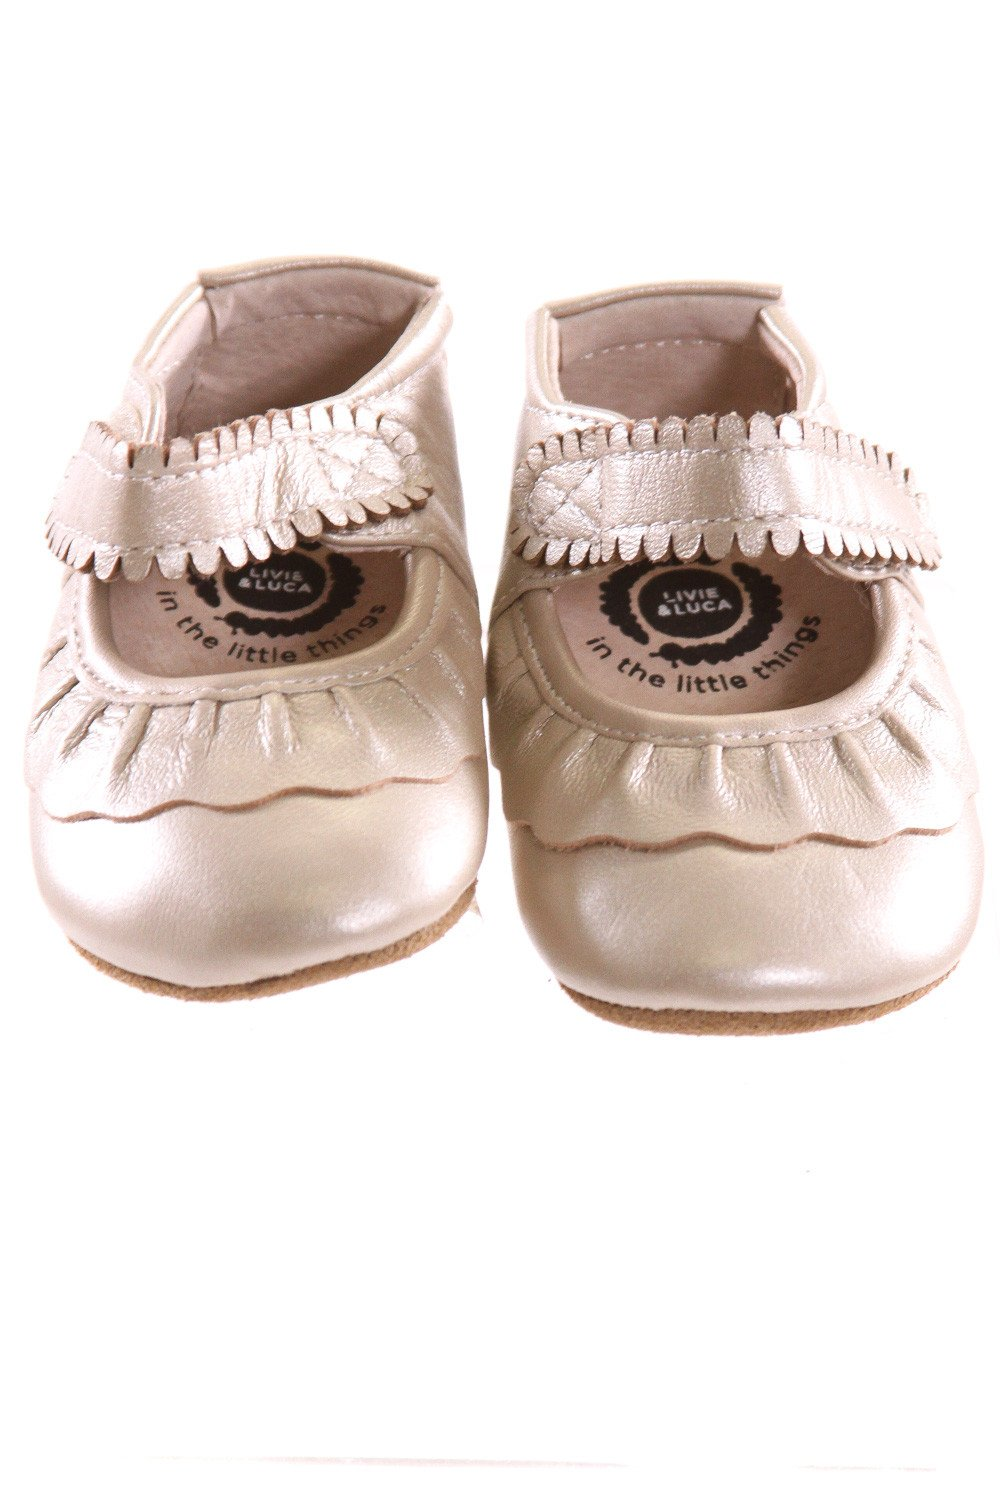 LIVIE & LUCA GOLD SOFT SOLES *SIZE 6-12 MONTHS = APPROX 3, EUC